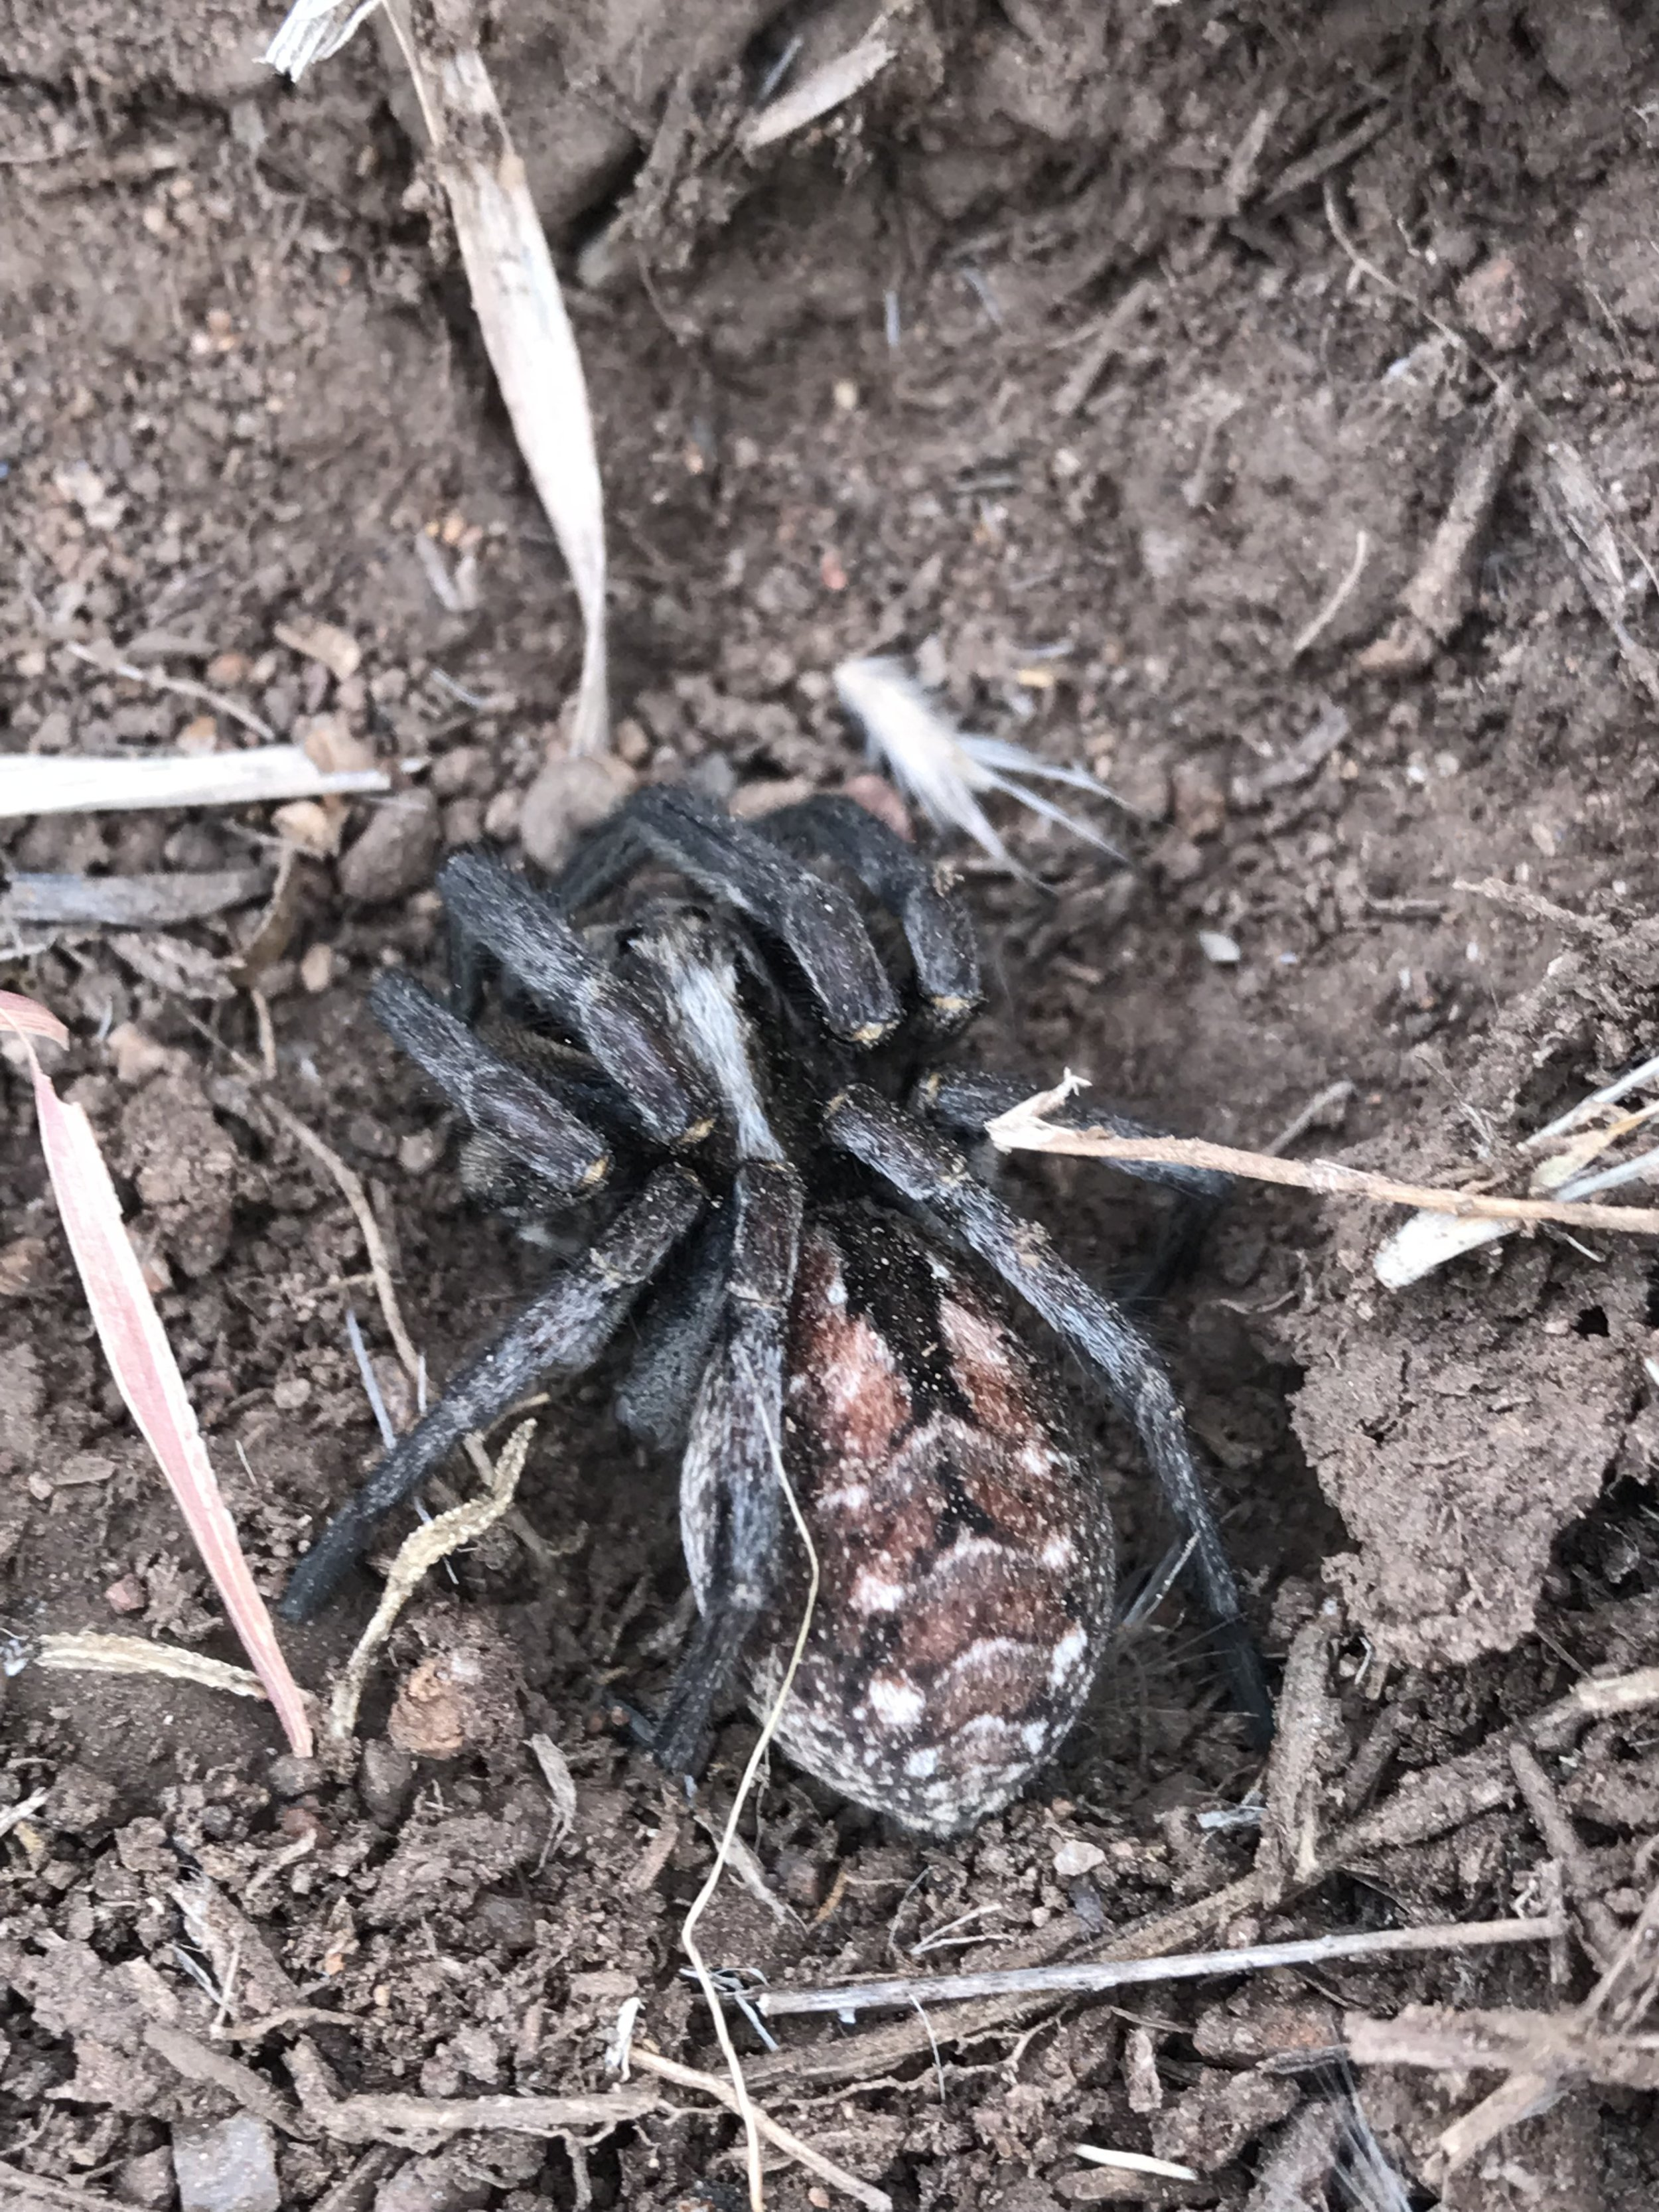 We found this super cool spider under a rock while gathering rocks for trail cairns. He is about an inch and a half long.